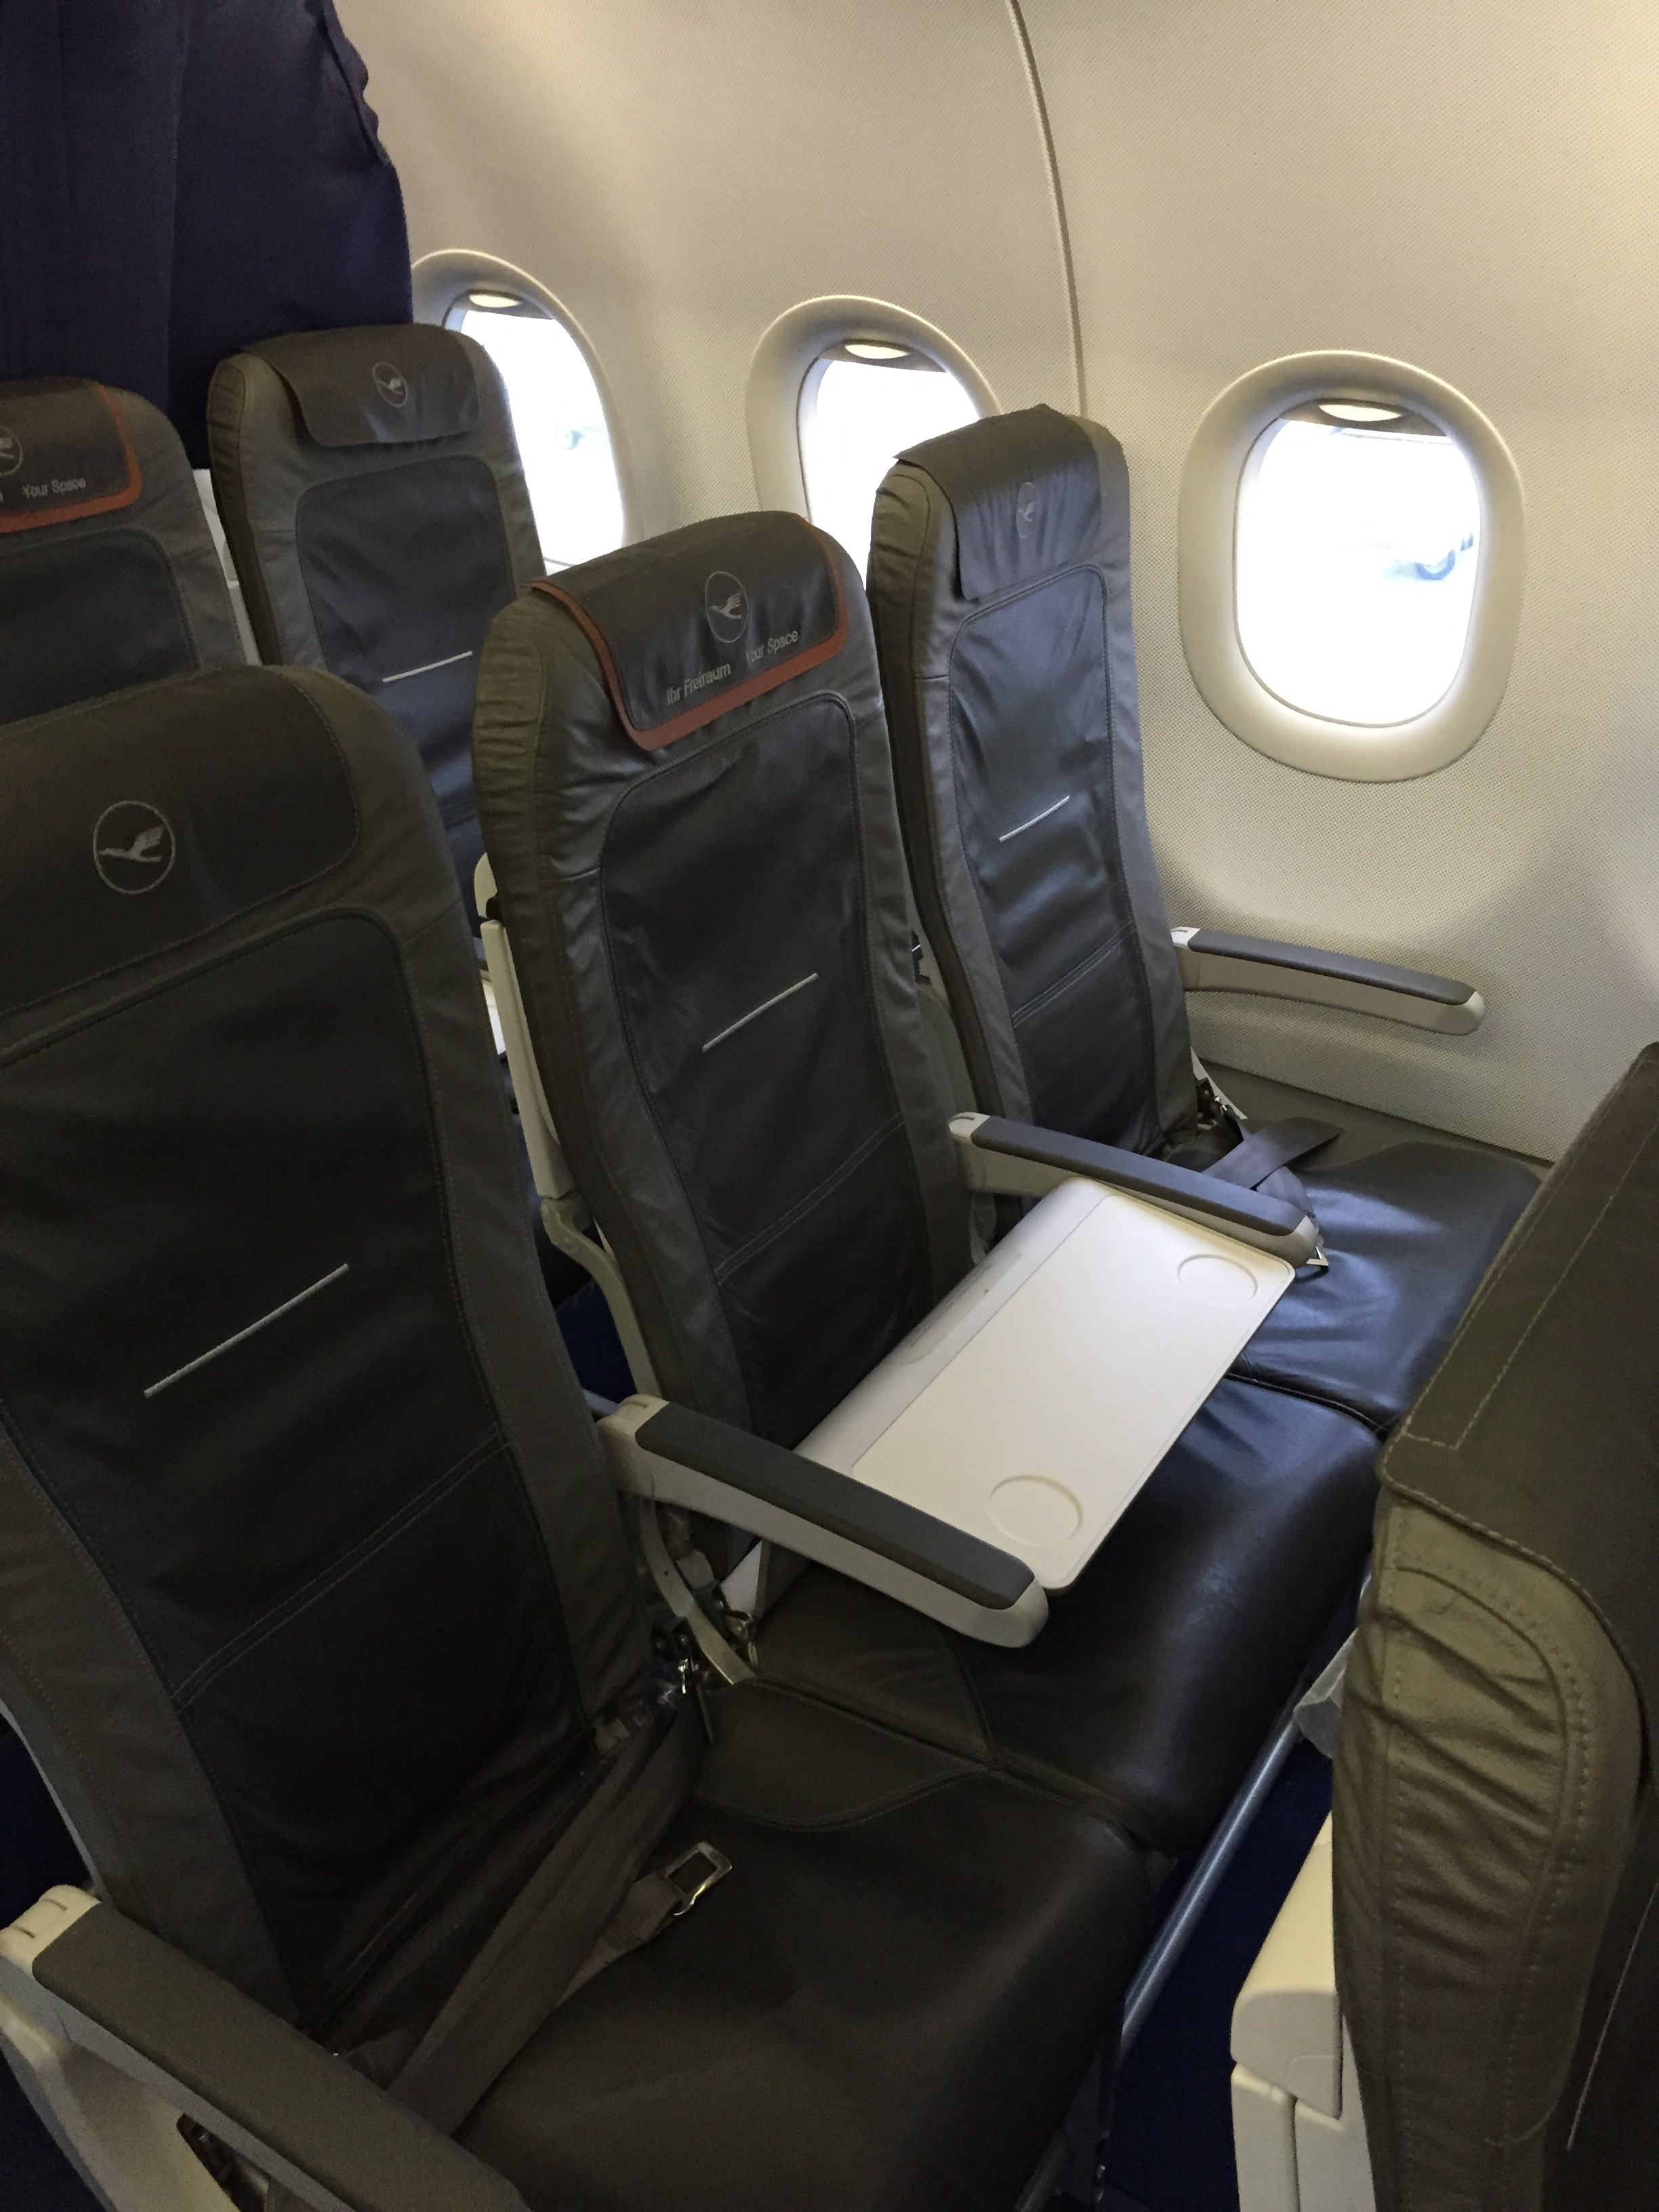 lufthansa business class airbus 321 200 great airline but discover in style luxury. Black Bedroom Furniture Sets. Home Design Ideas